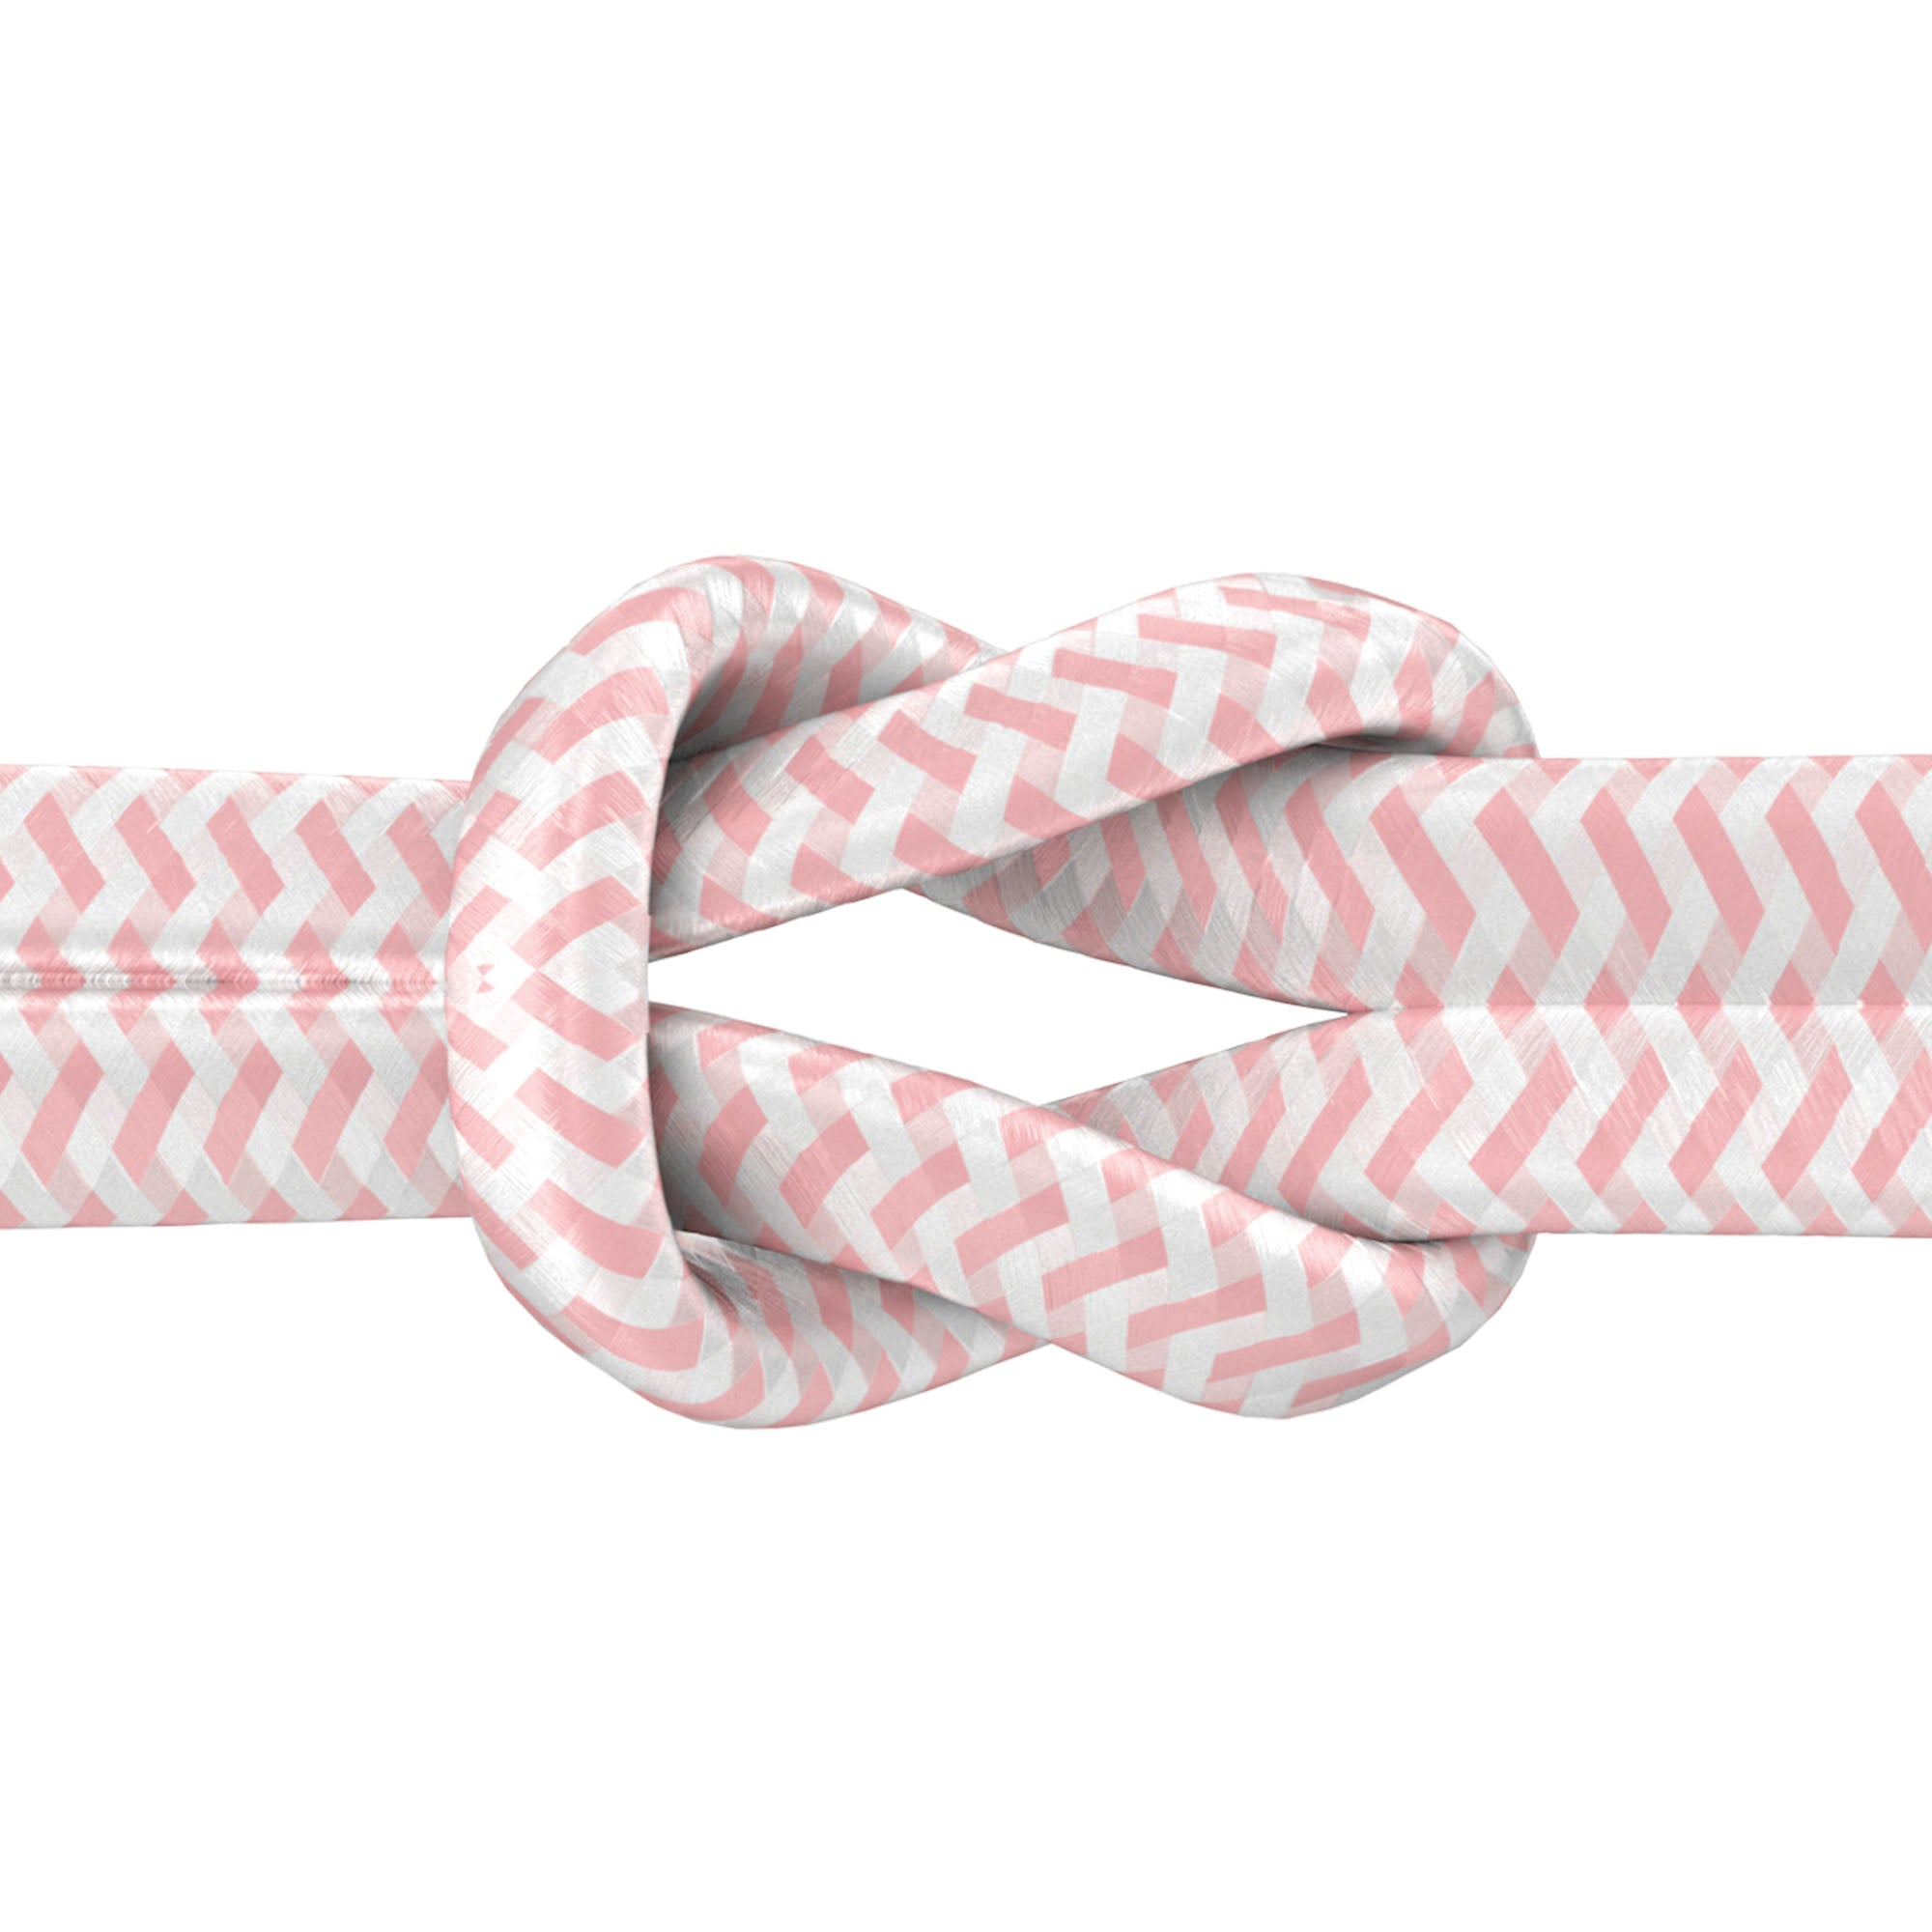 6ft Nylon Braided Flat USB-C Cable - Rose Gold